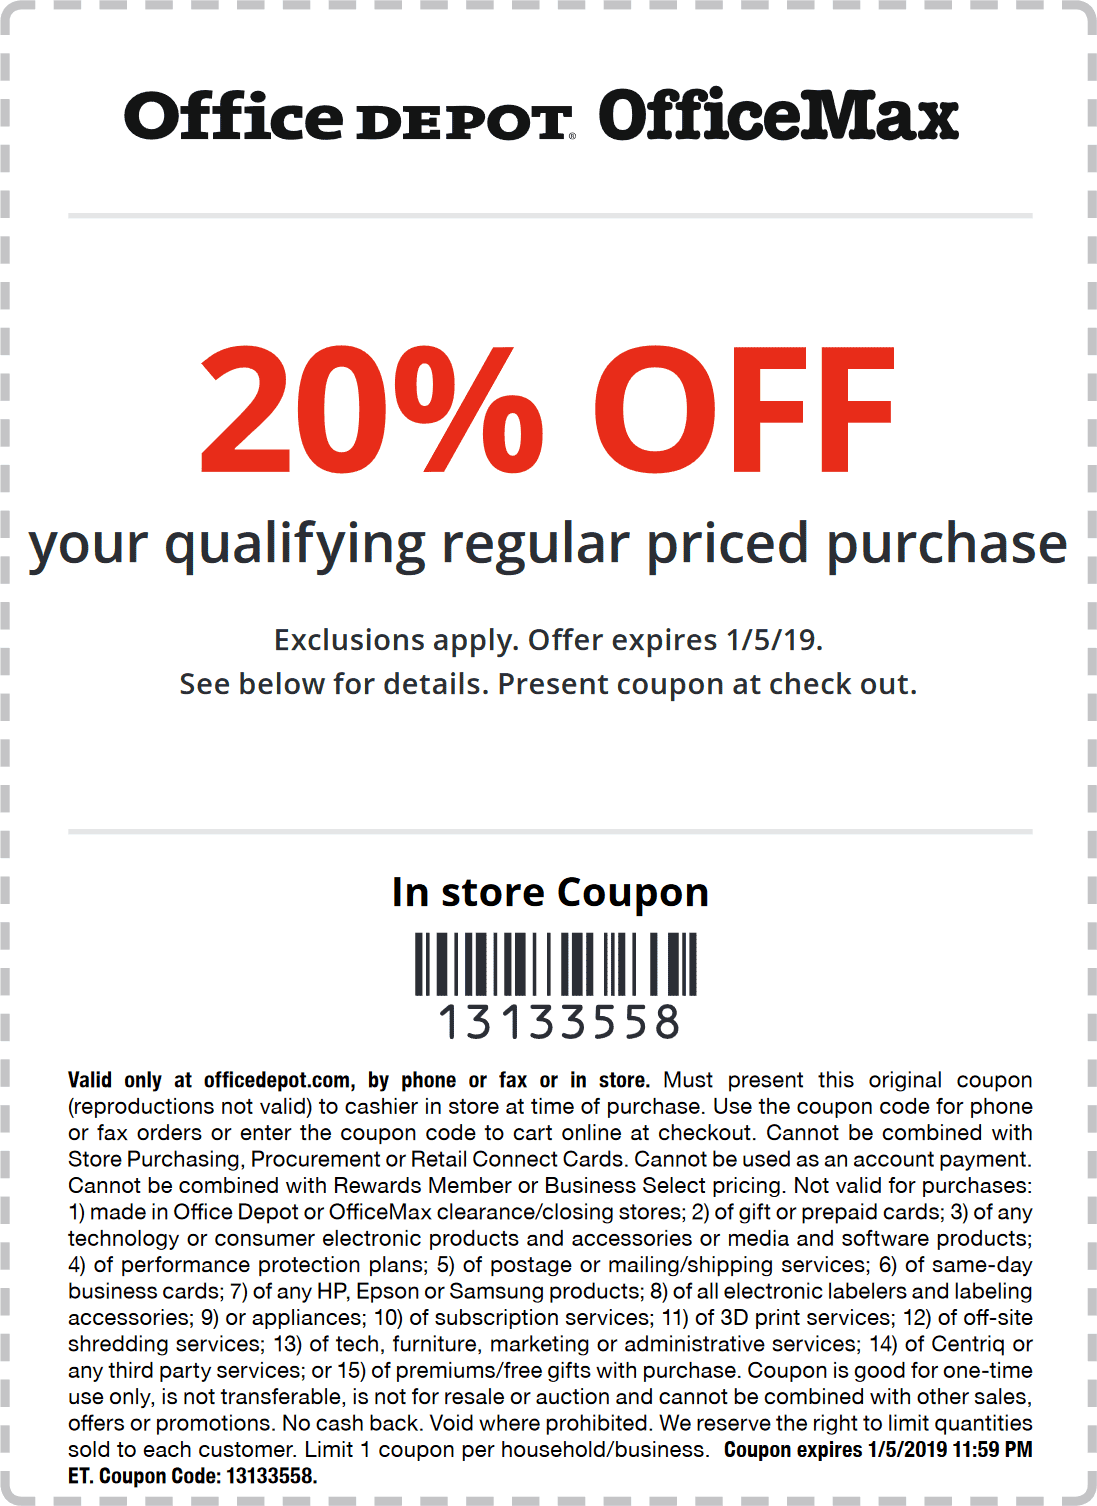 Office Depot Coupon December 2019 20% off at Office Depot & OfficeMax, or online via promo code 13133558